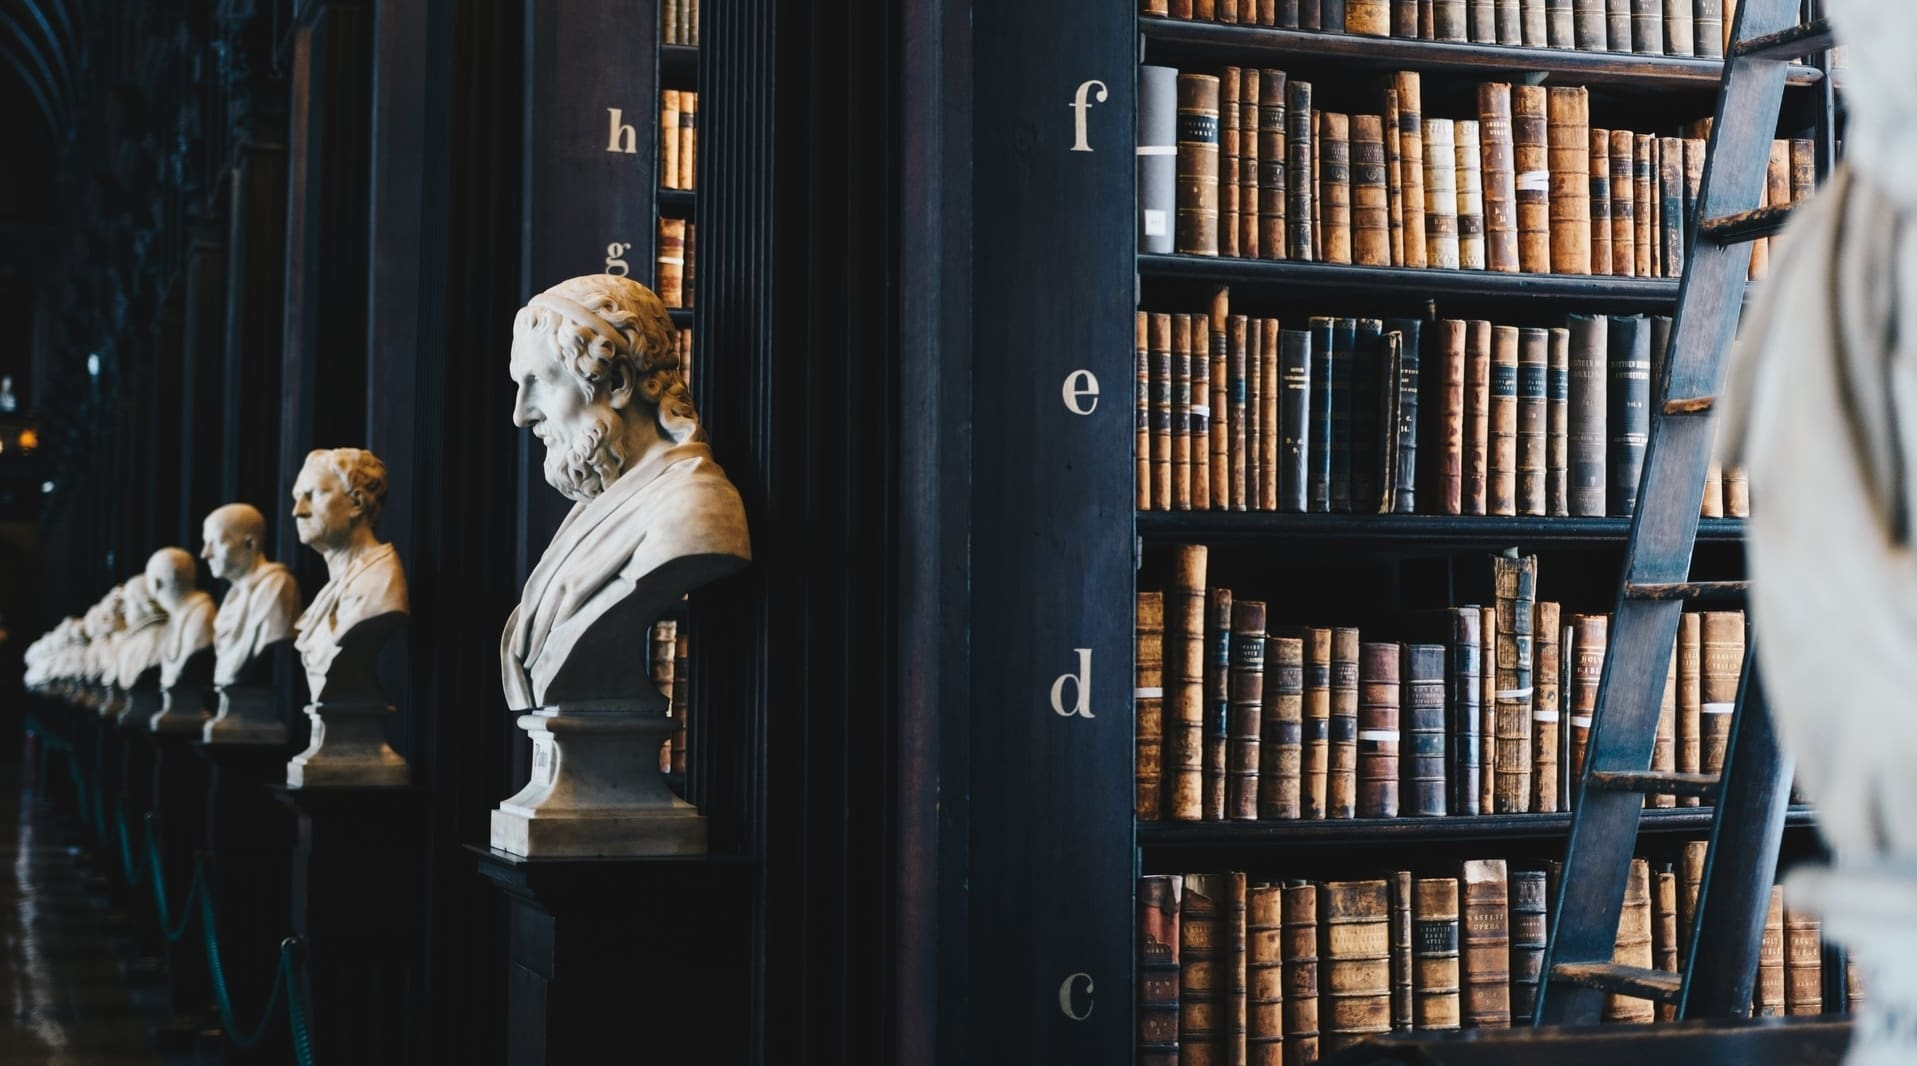 How Studying Philosophy Can Help You Excel at Work and Life in General